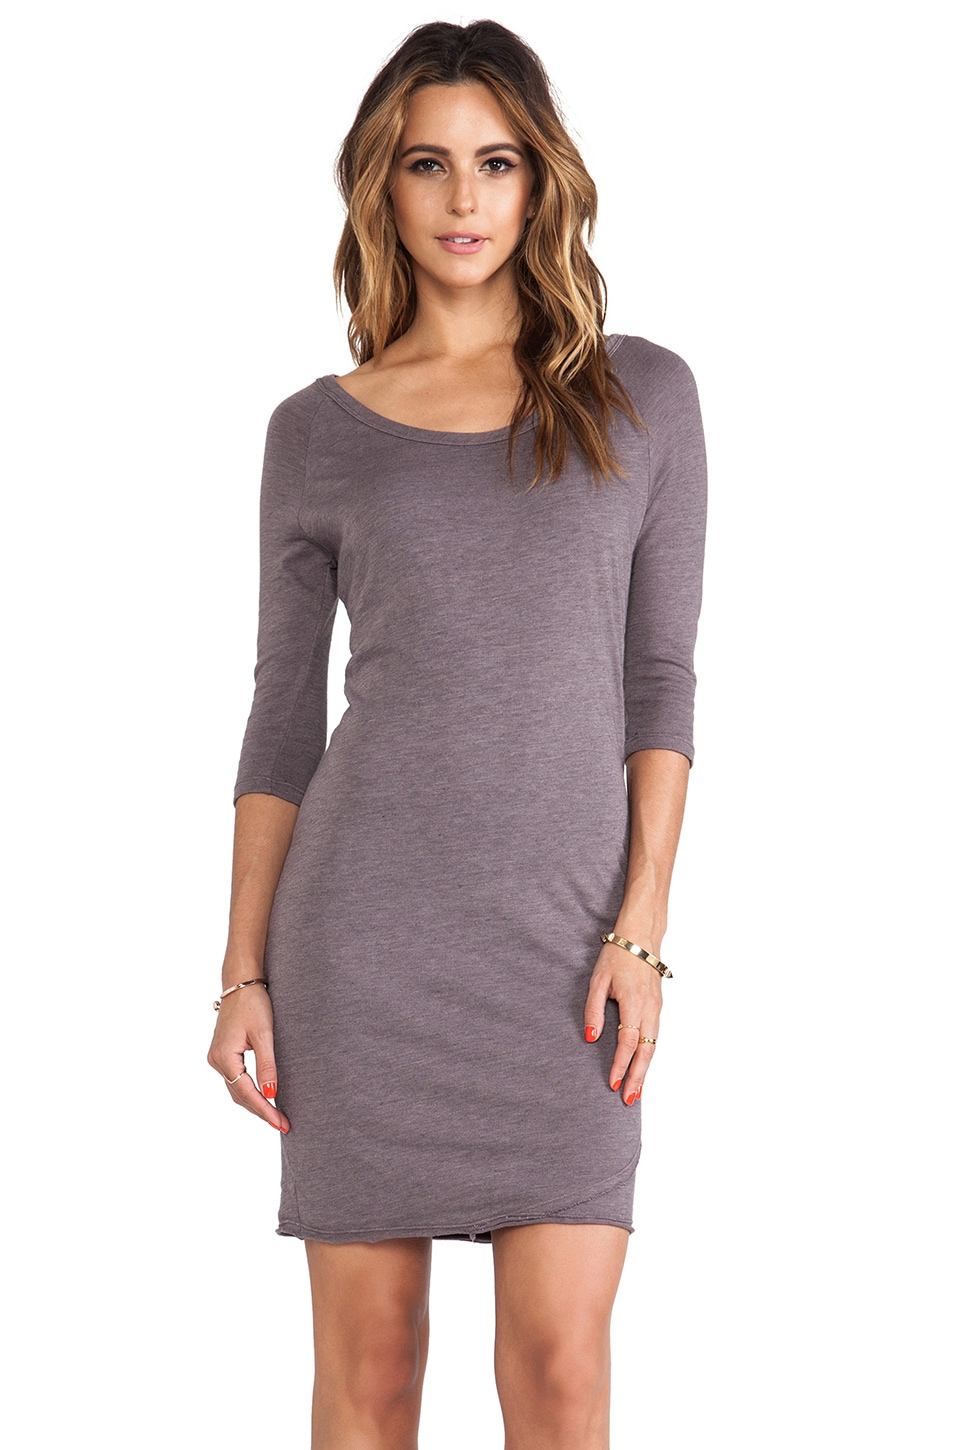 SUNDRY Side Ruched Dress in Sunset Grey